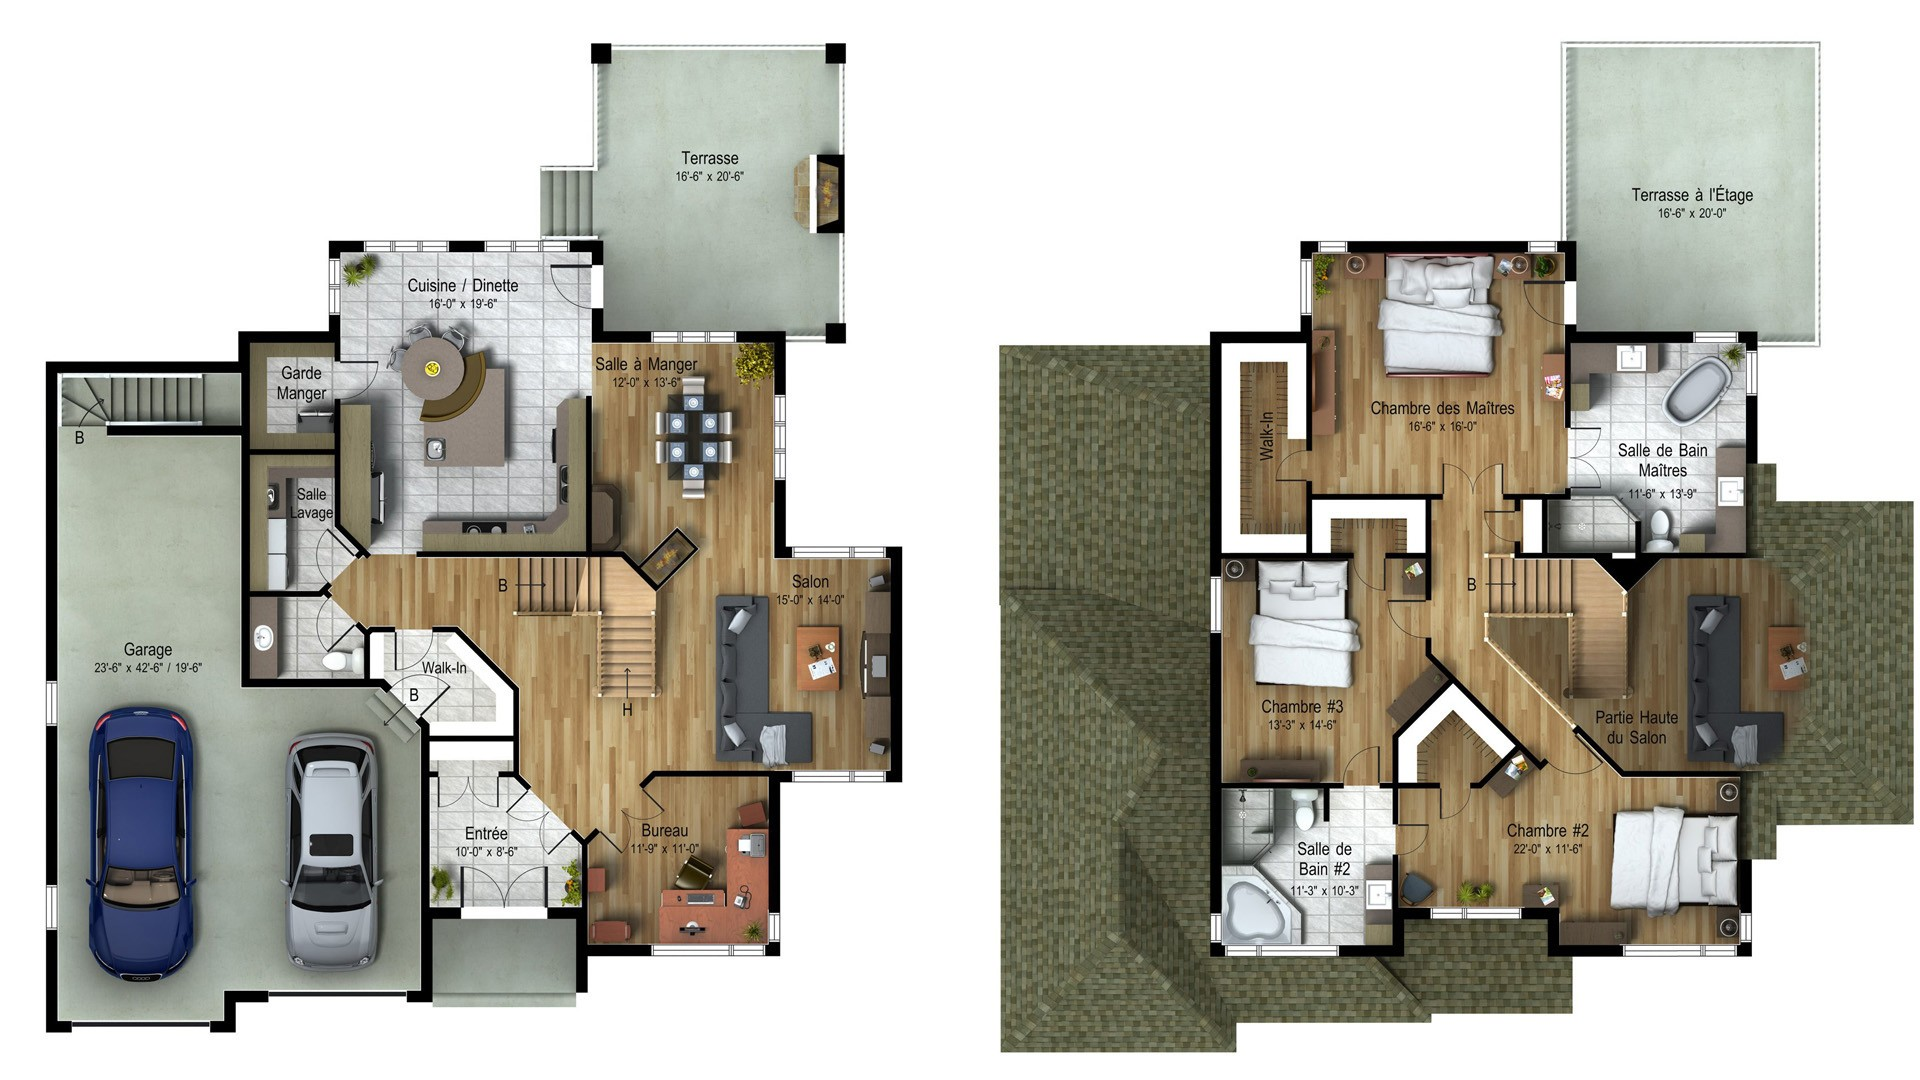 Cottage_Contemporain_Nuance_Plan maison de prestige_Domicil